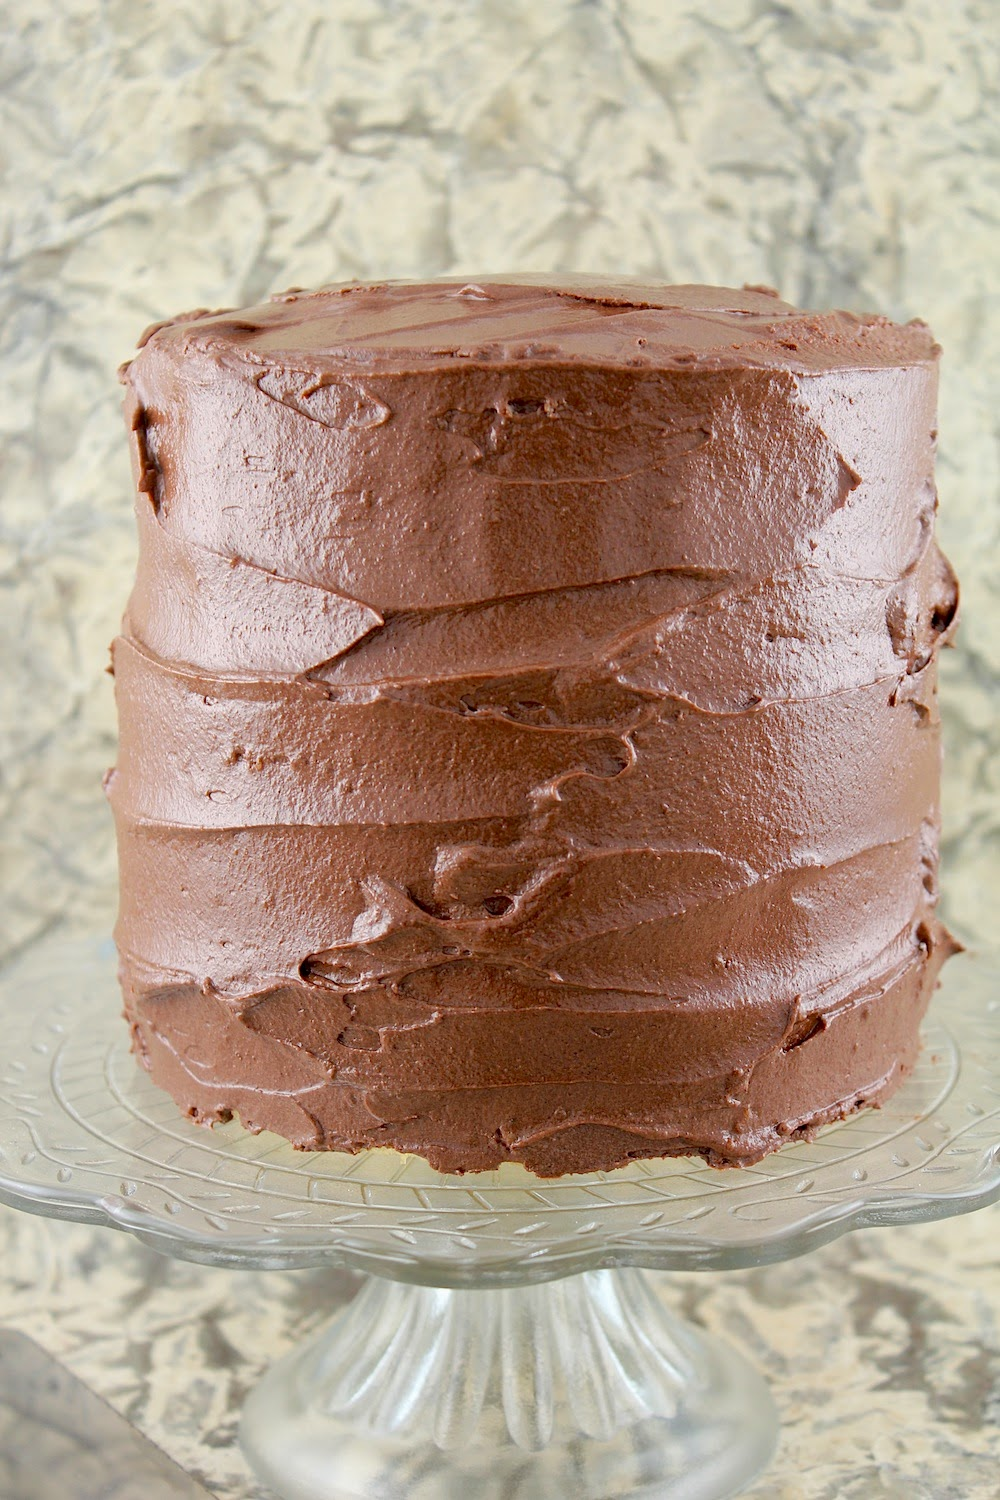 ... feast: Golden Vanilla Layer Cake with Chocolate Mocha Frosting